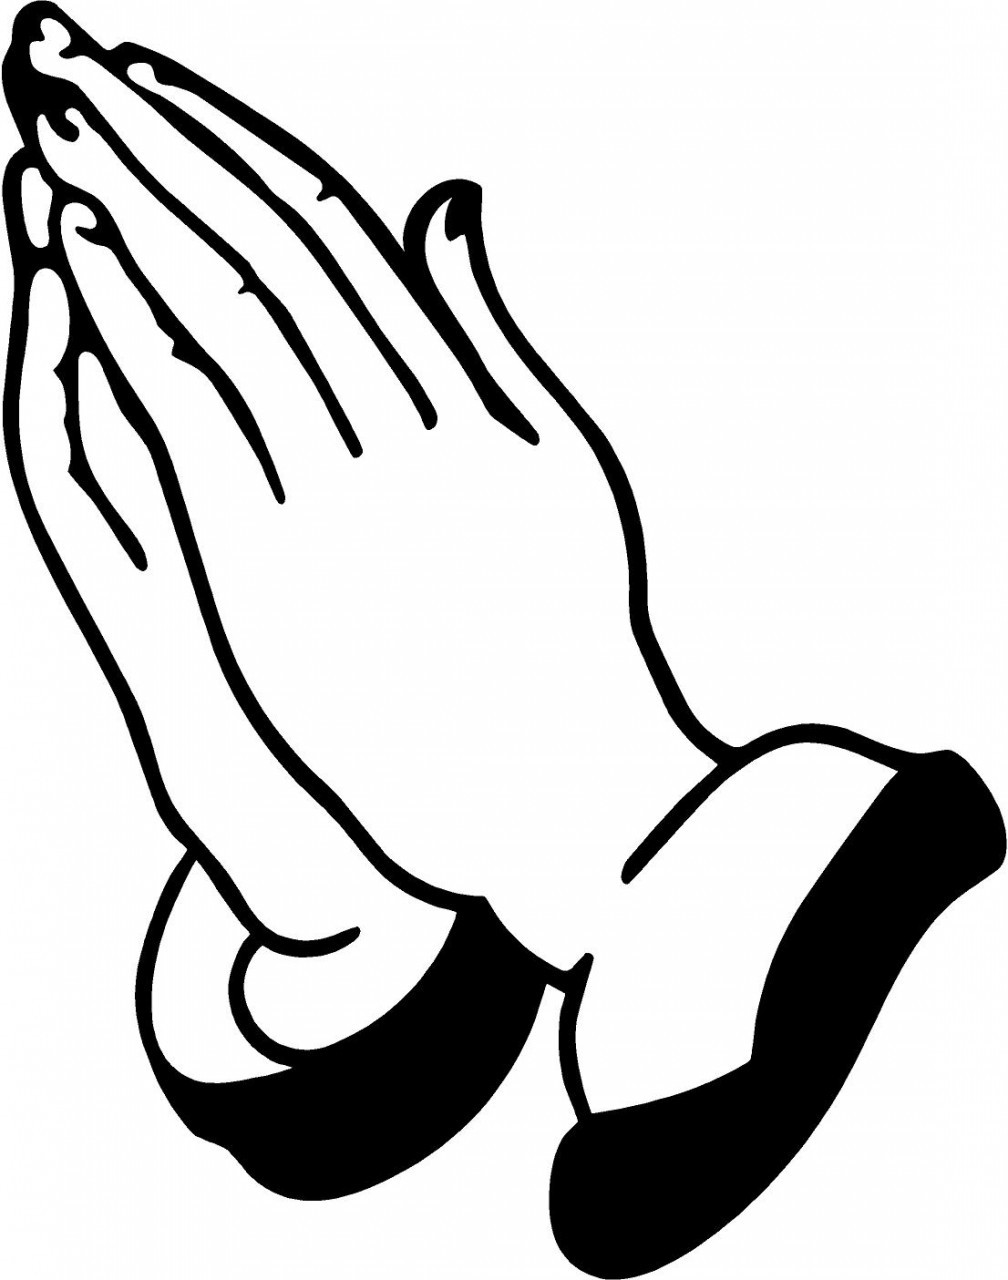 Free Namaste Cliparts, Download Free Clip Art, Free Clip Art ... clip free download